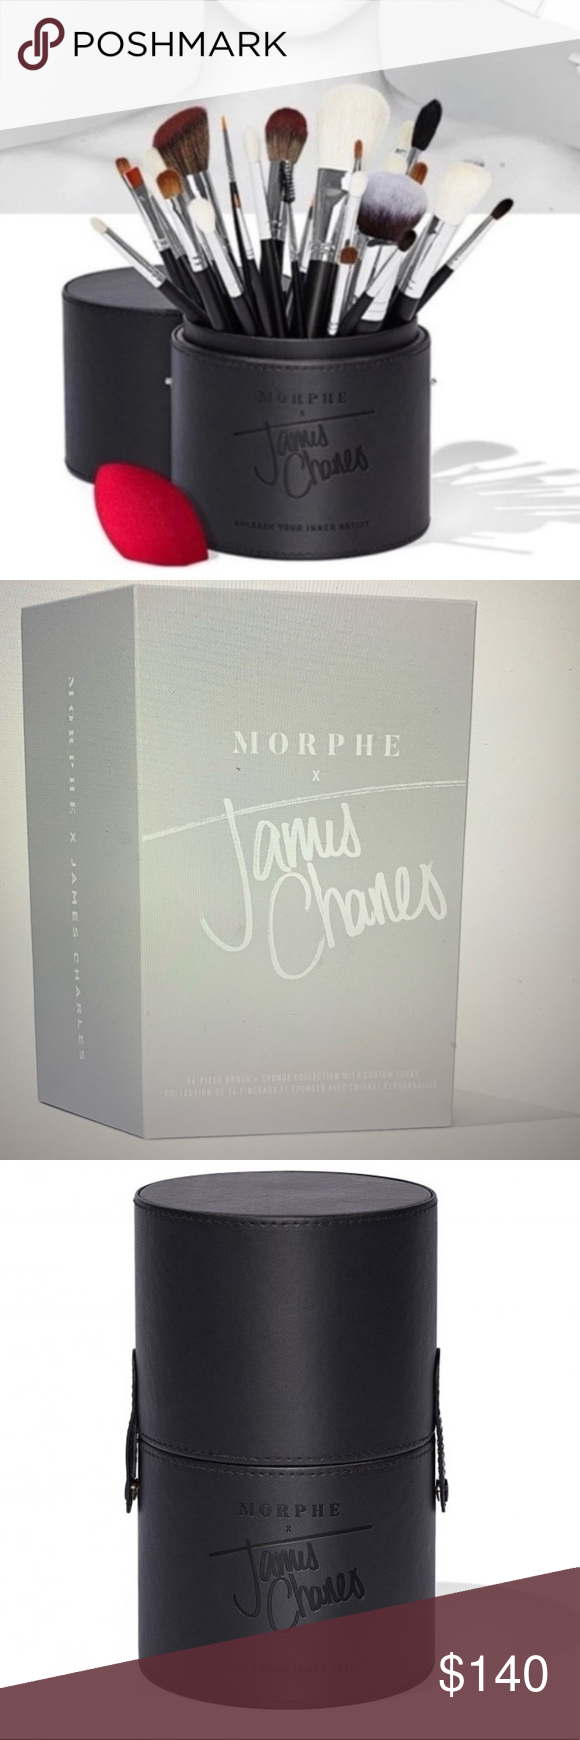 New in box James Charles brush set Boutique James